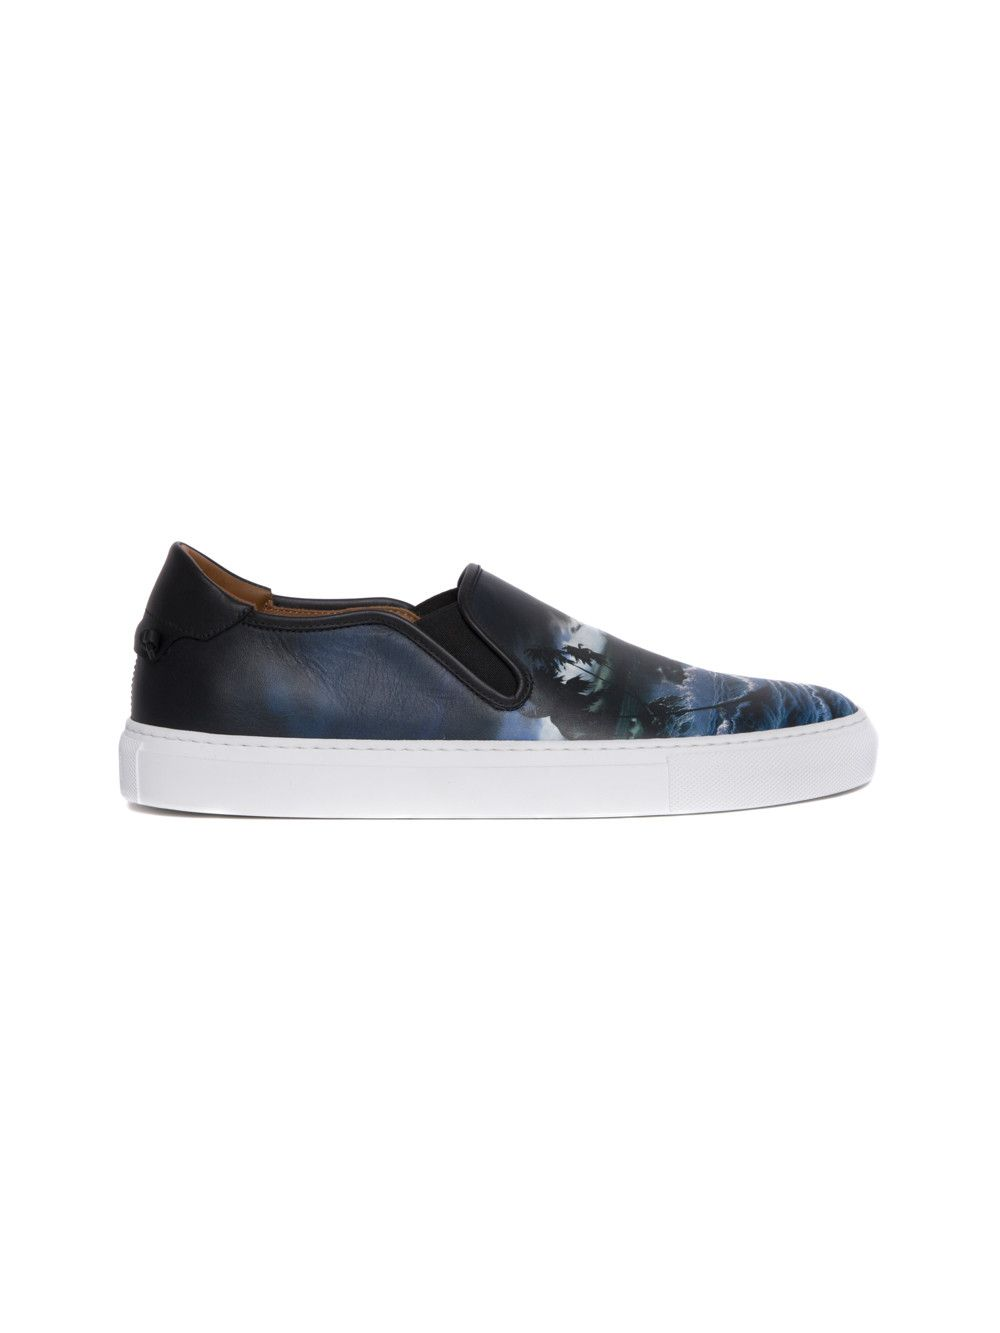 GIVENCHY 'Blue Hawaii' Print Low Top Sneakers. #givenchy